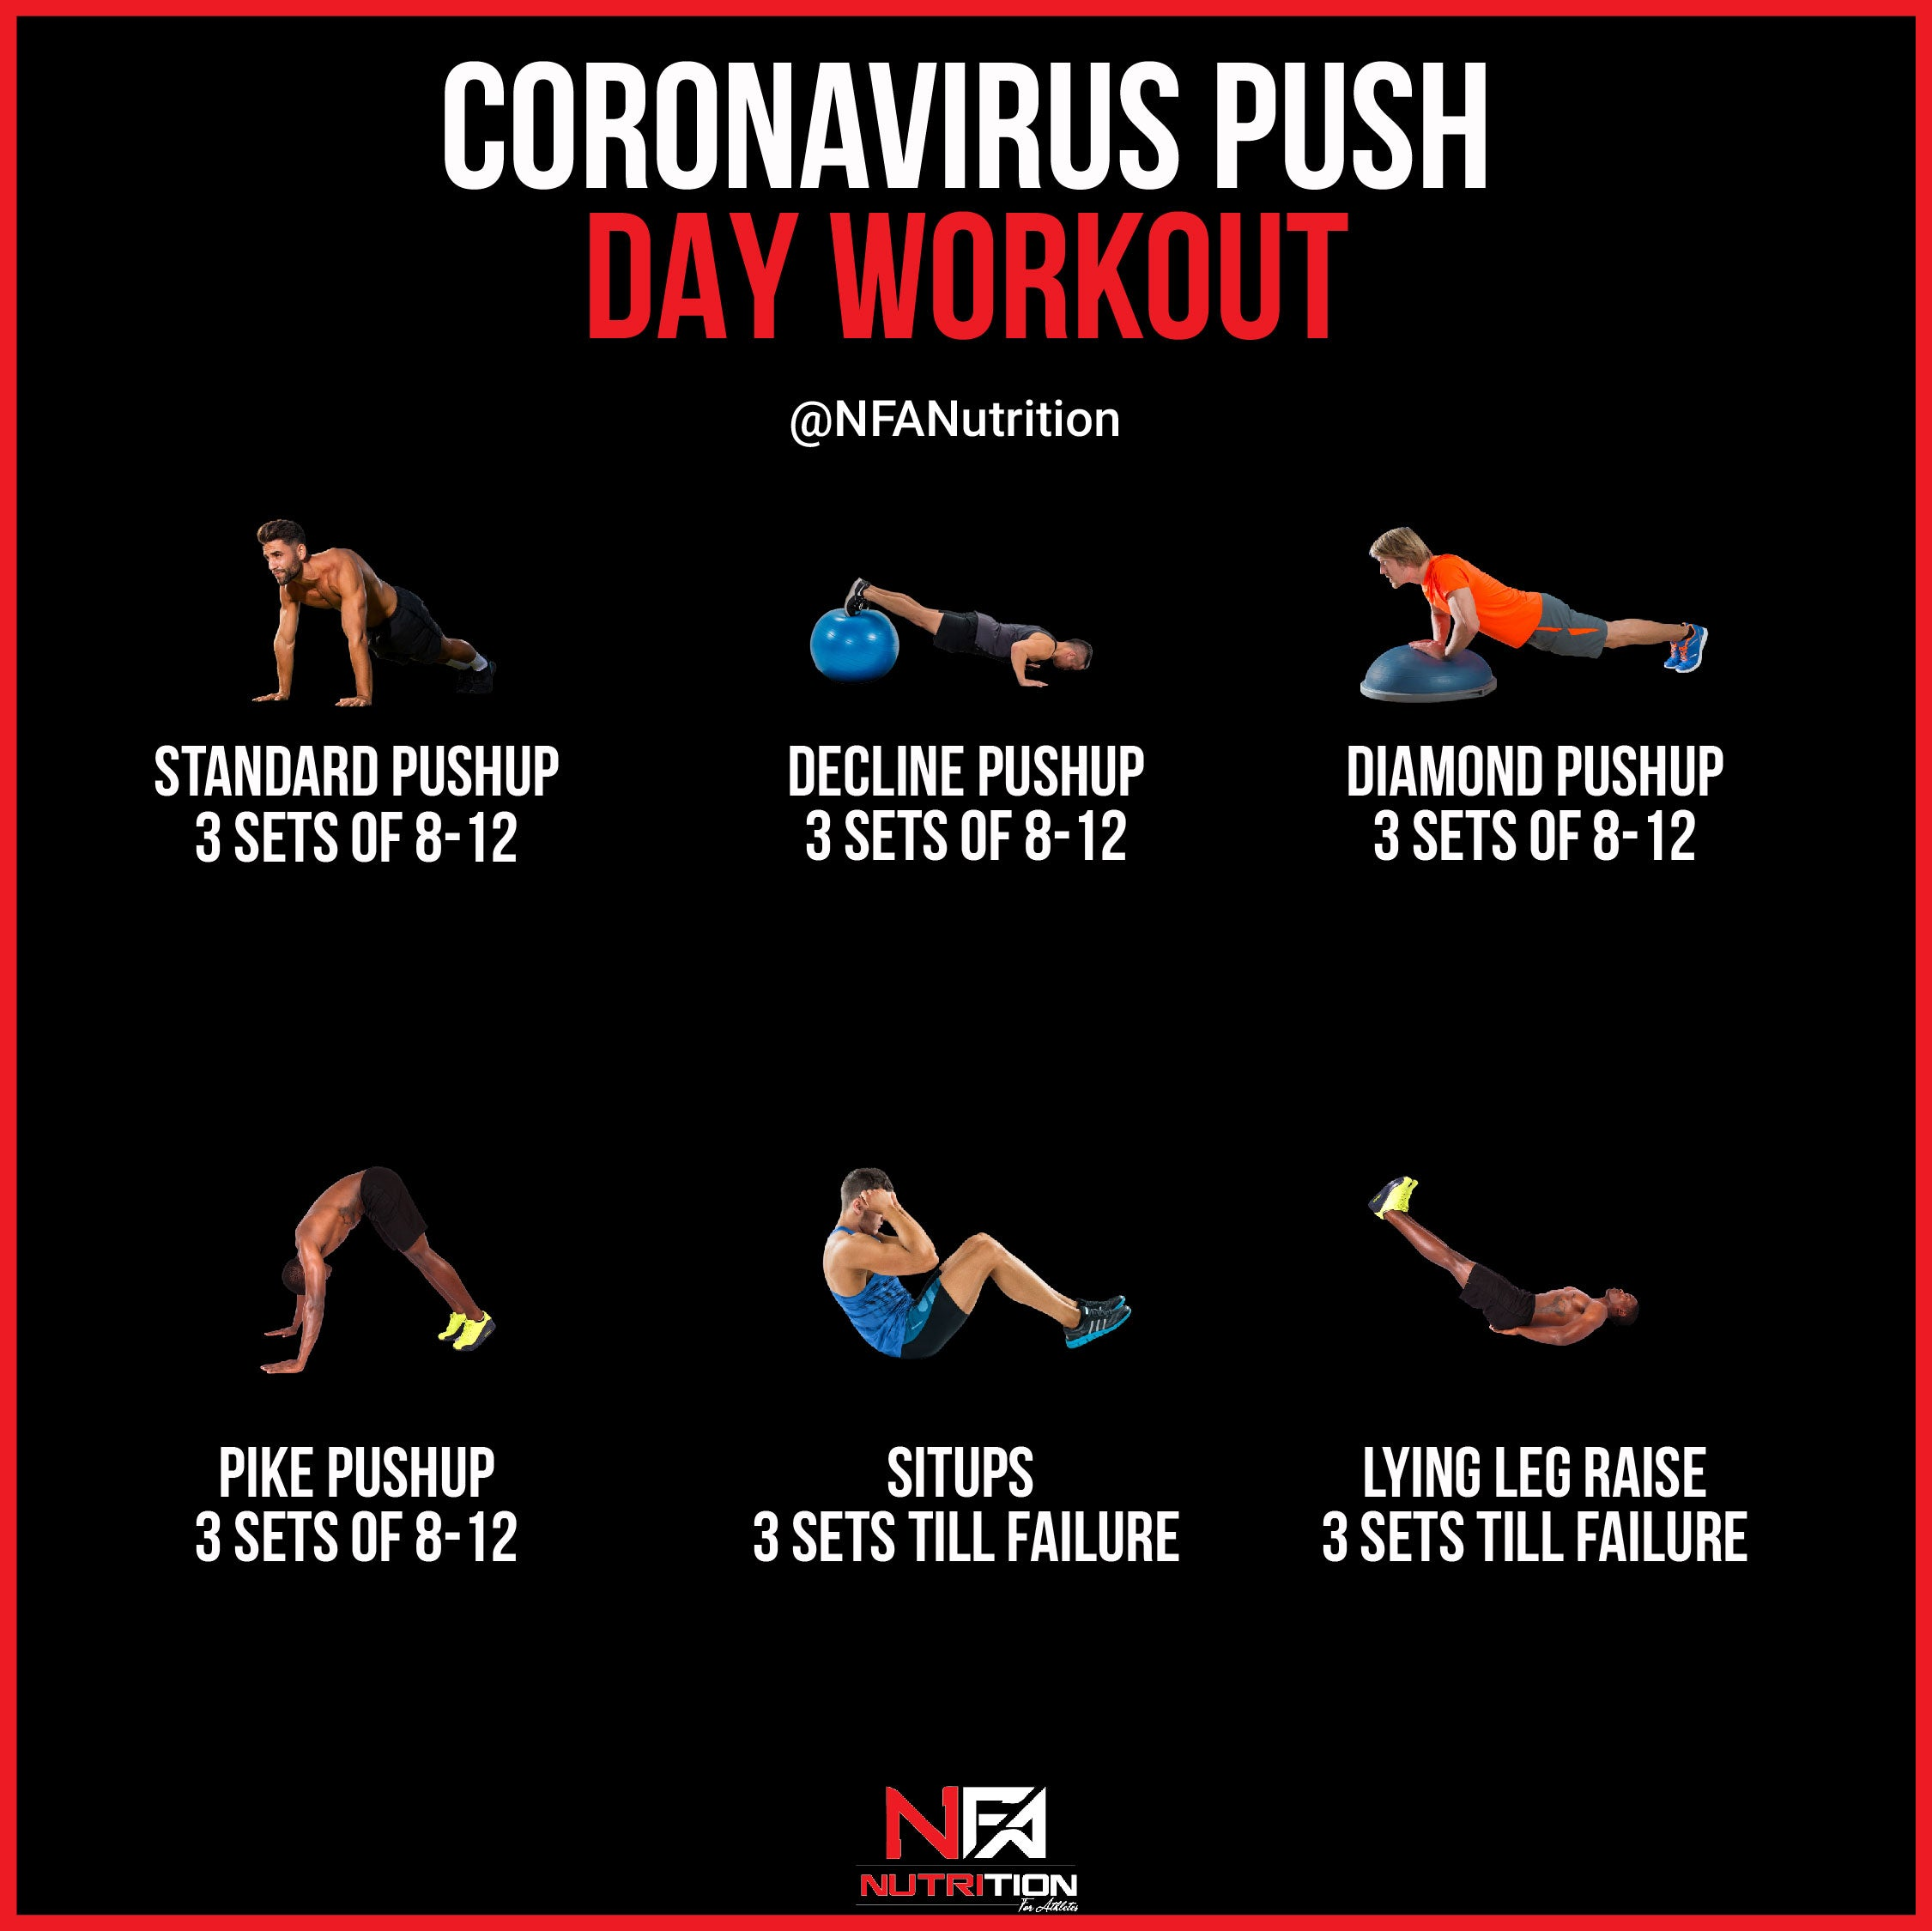 At Home PUSH Workout during COVID-19